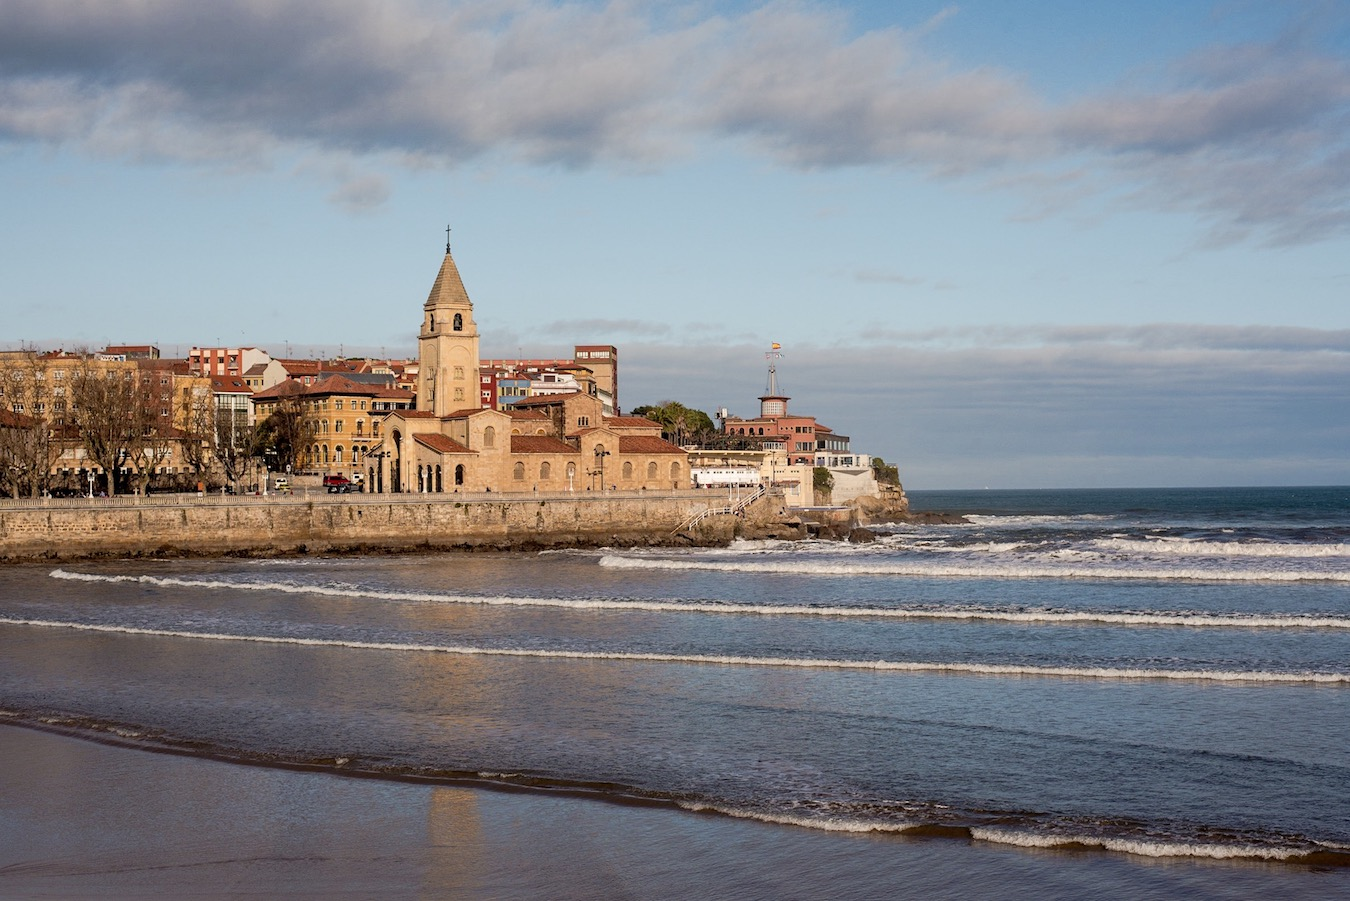 Gijon, Asturias, northern Spain